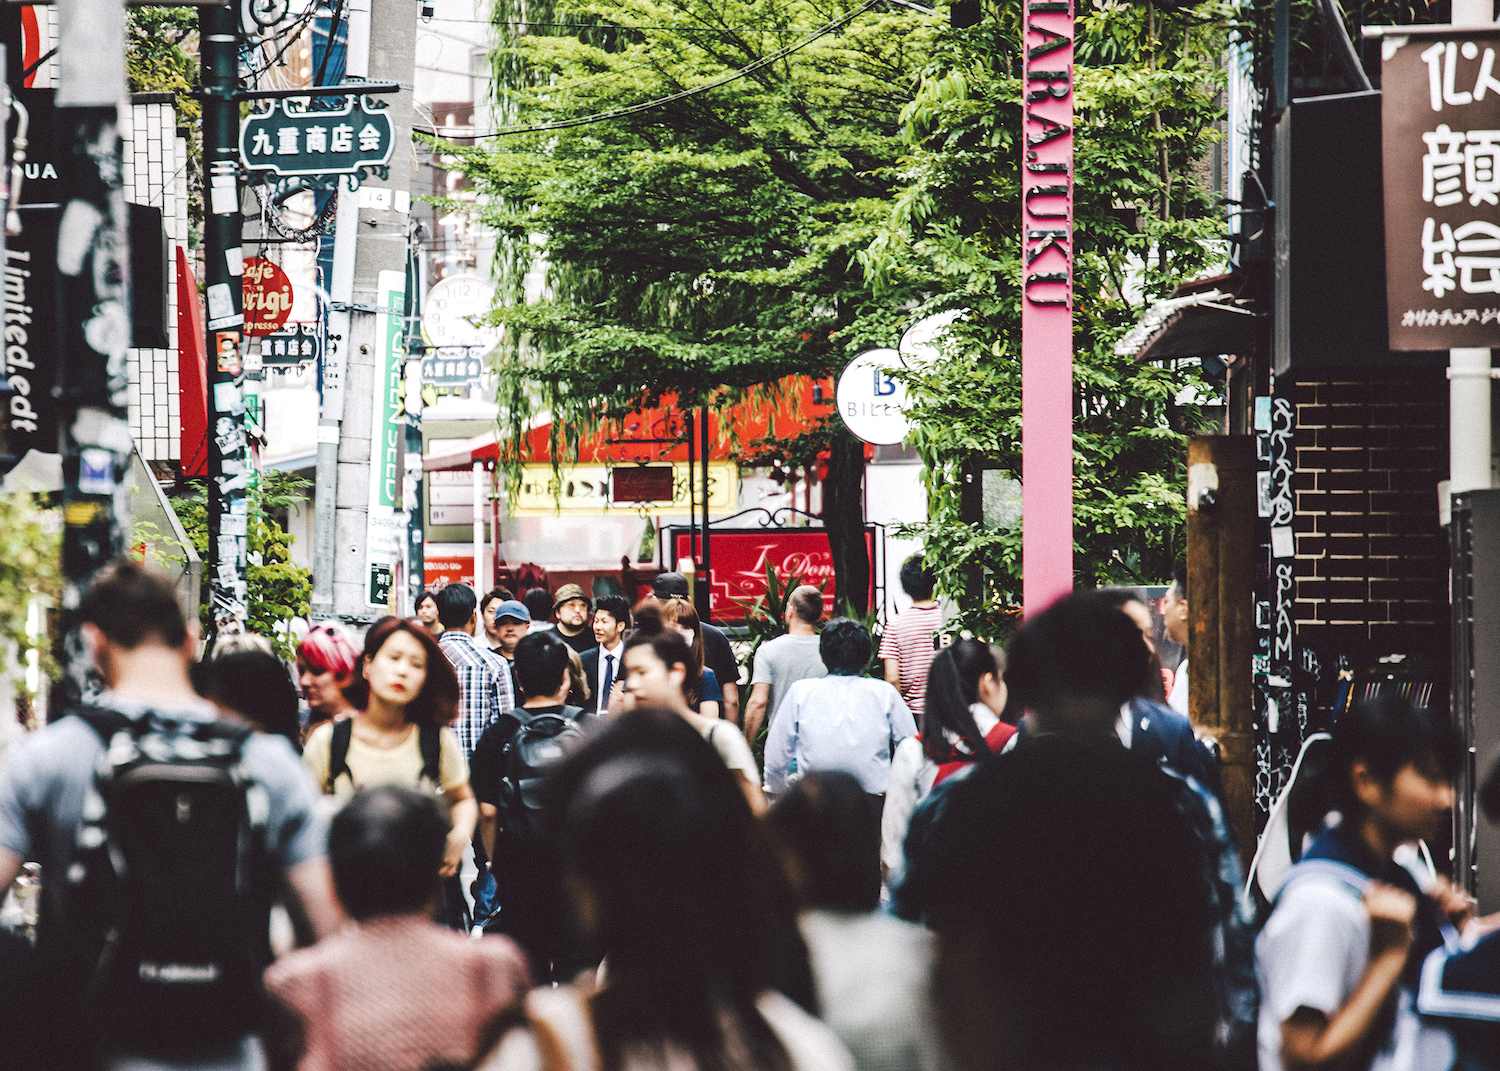 Why Rakuten's partnership with Tokyo Fashion Week, which will rebrand the event as Rakuten Fashion Week Tokyo, makes sense for Japan's designers, shoppers and more.